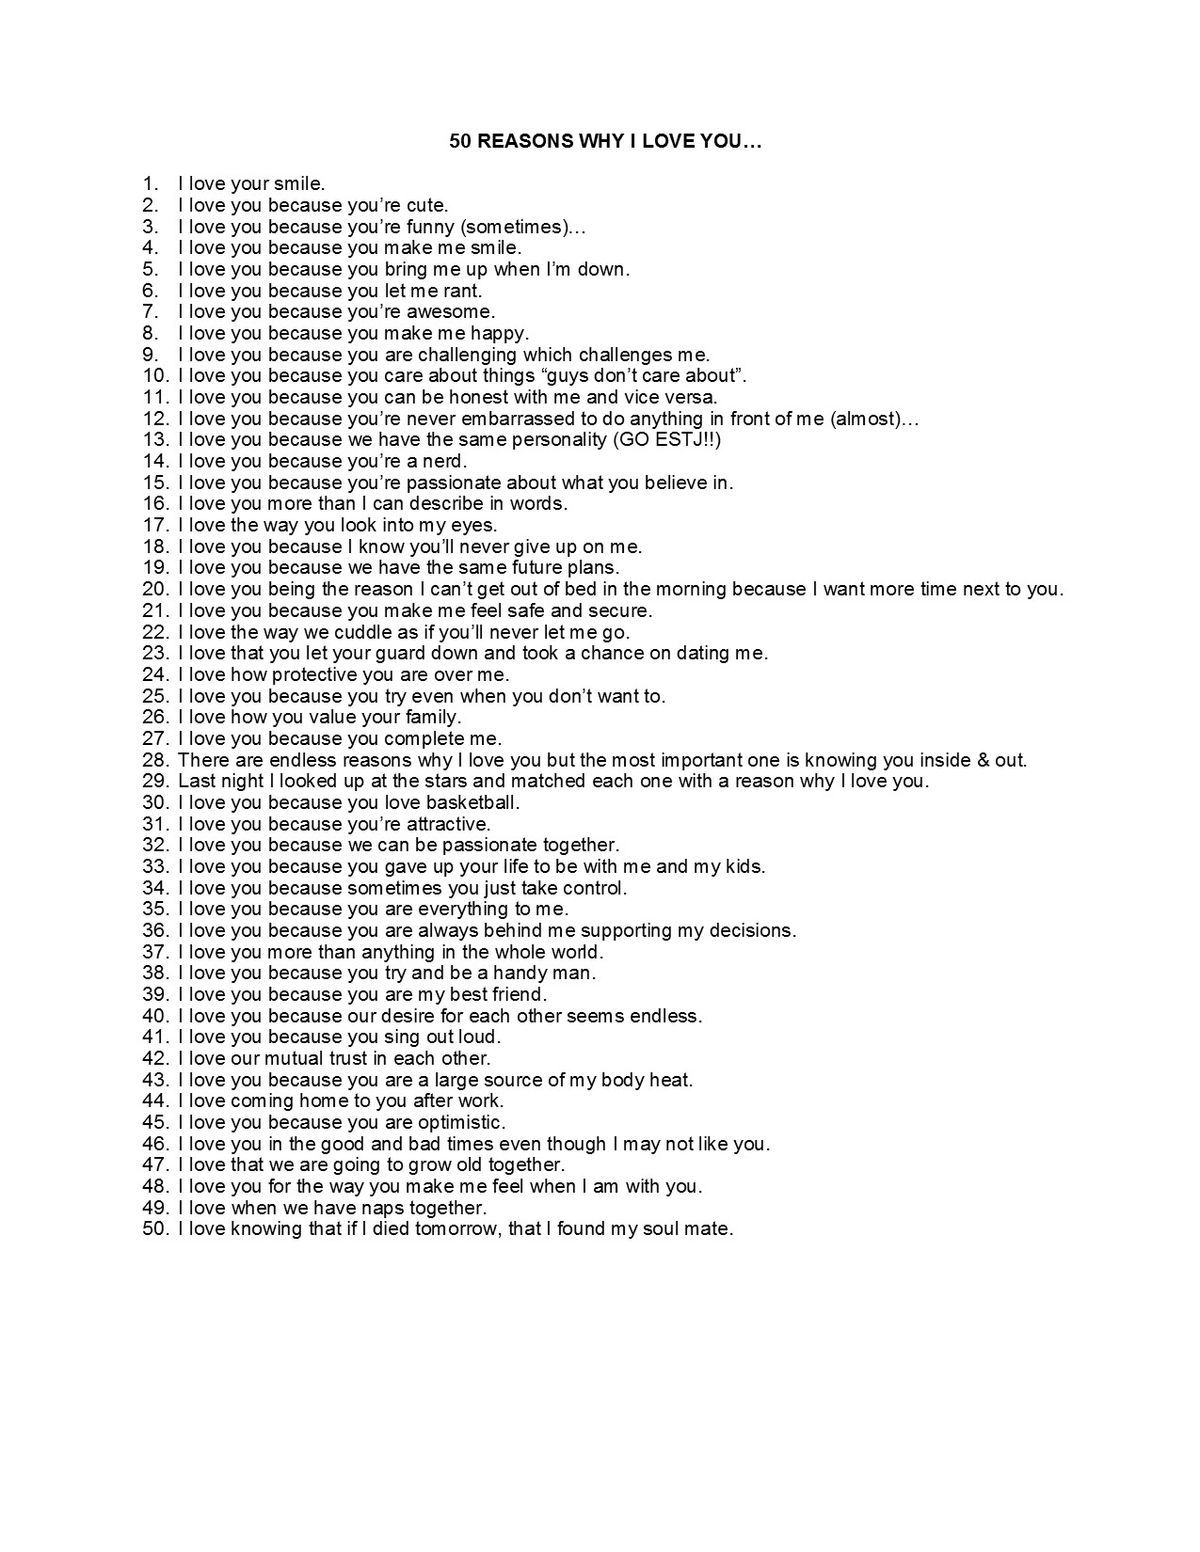 52 reasons why i love you ideas for girlfriend